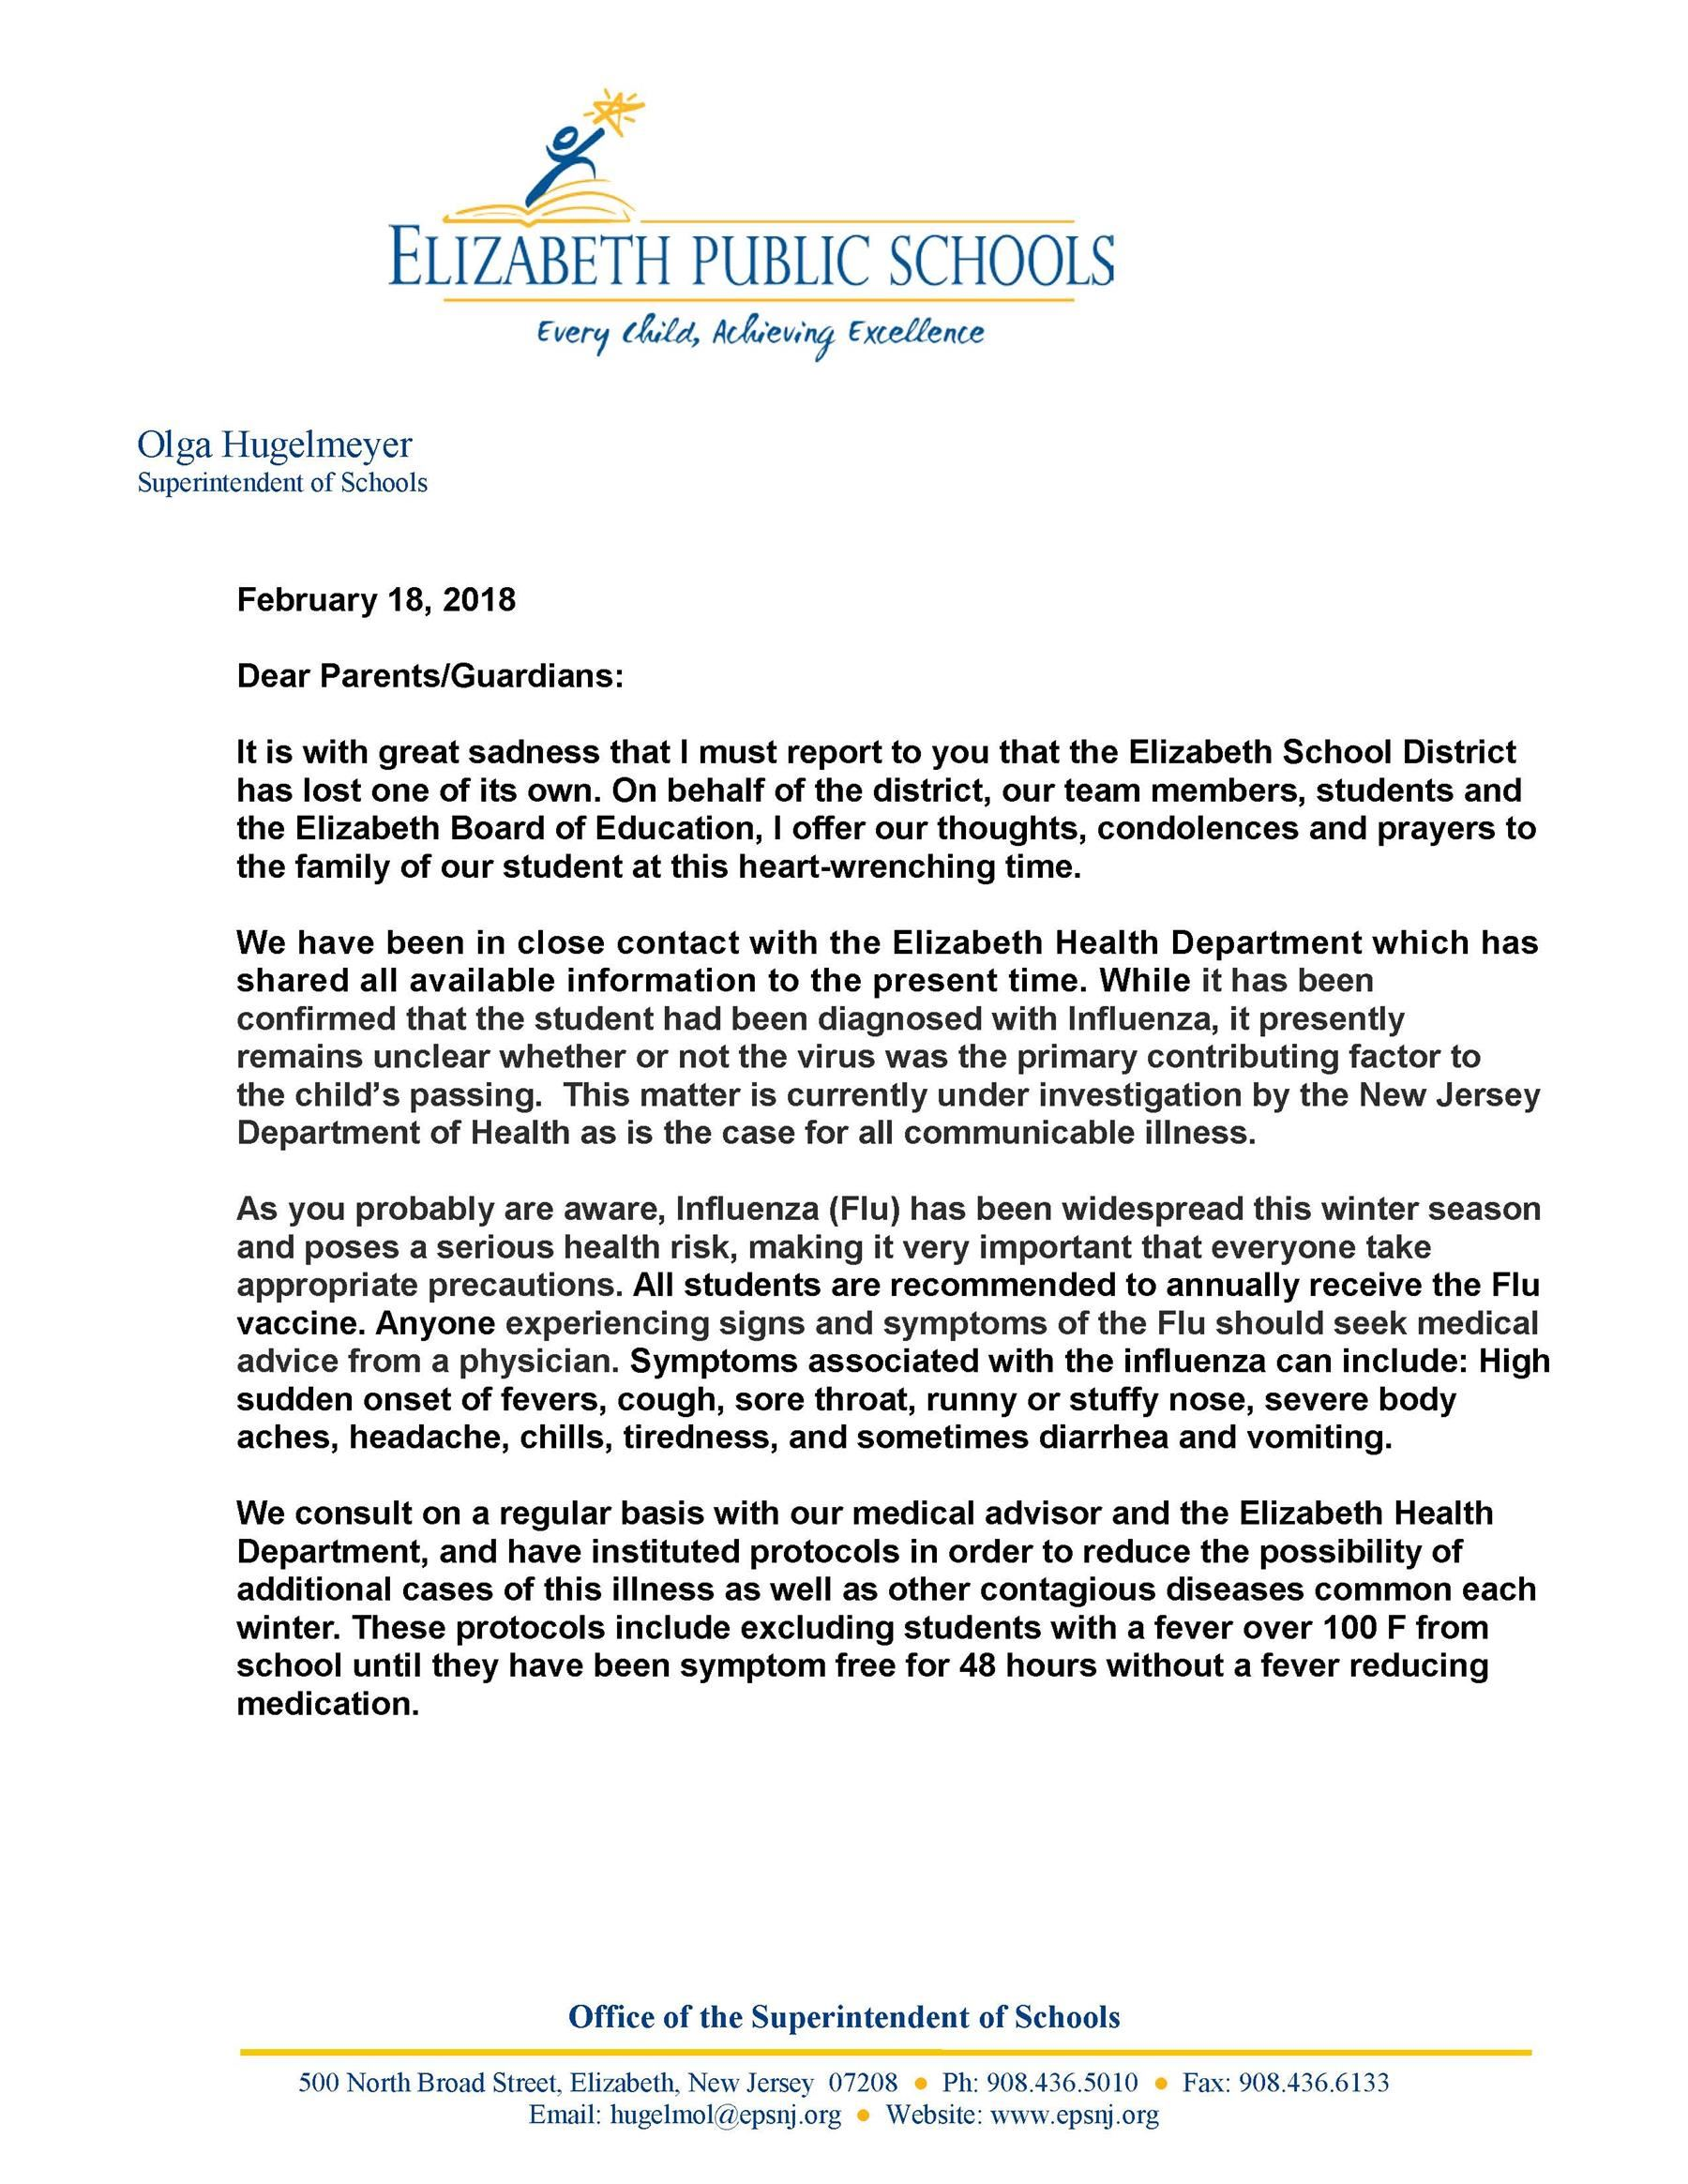 Letter to Parents Regarding Student Passing and Flu Prevention